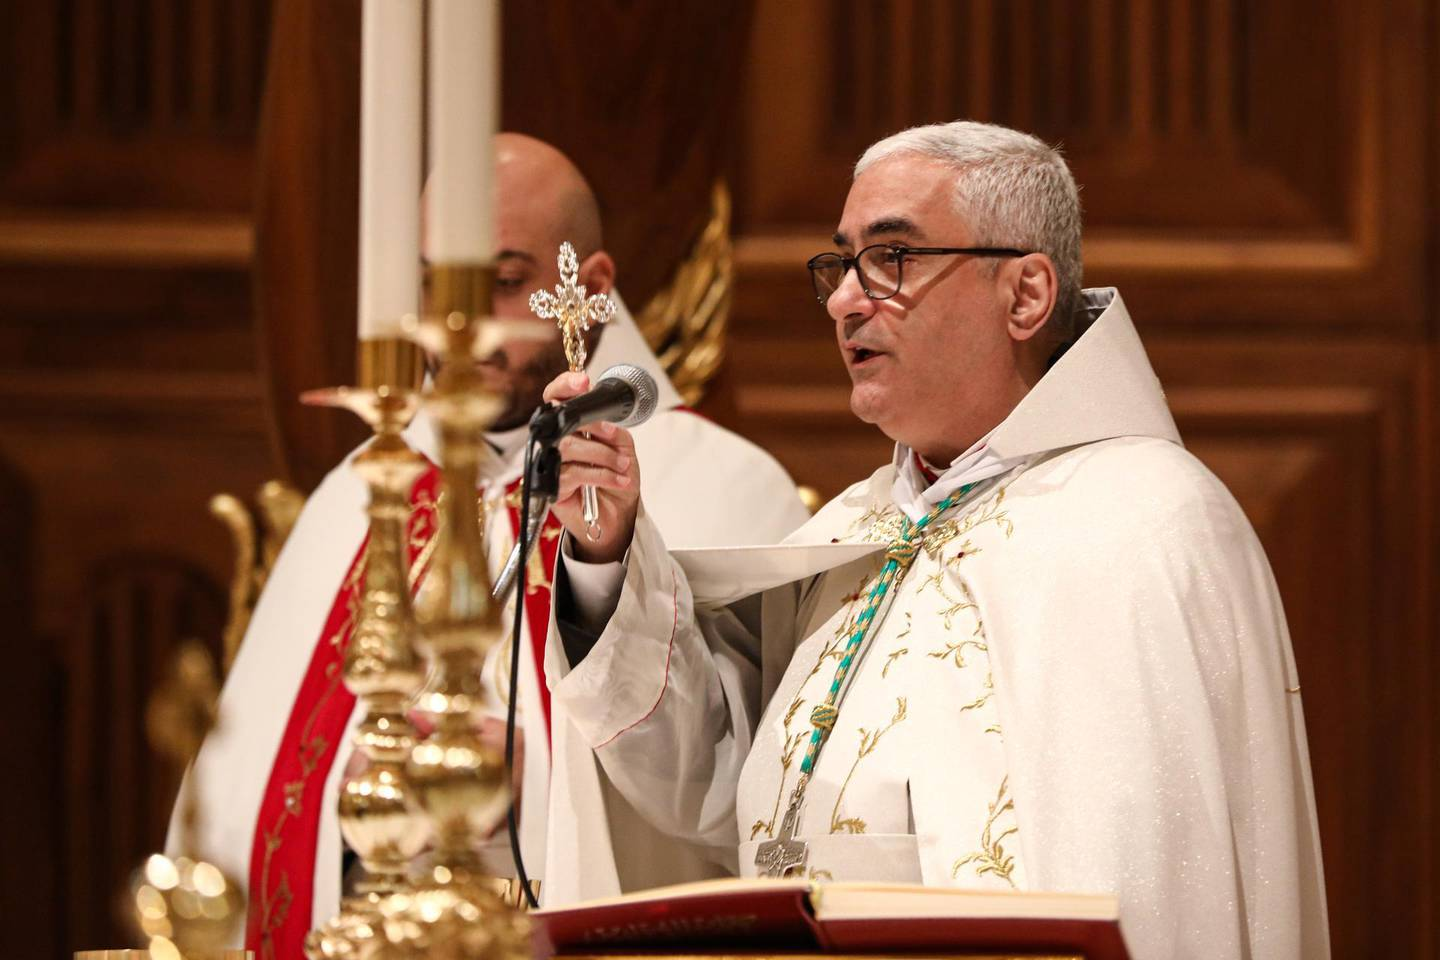 Bishop Paul Abdel Sater, Curial bishop of the Maronite Catholic Patriarchate of Antioch, holds up a crucifix as he speaks during the Christmas Morning mass at the Maronite Cathedral of St George in the capital Beirut's downtown district on Christmas Day on December 25, 2019. (Photo by ANWAR AMRO / AFP)